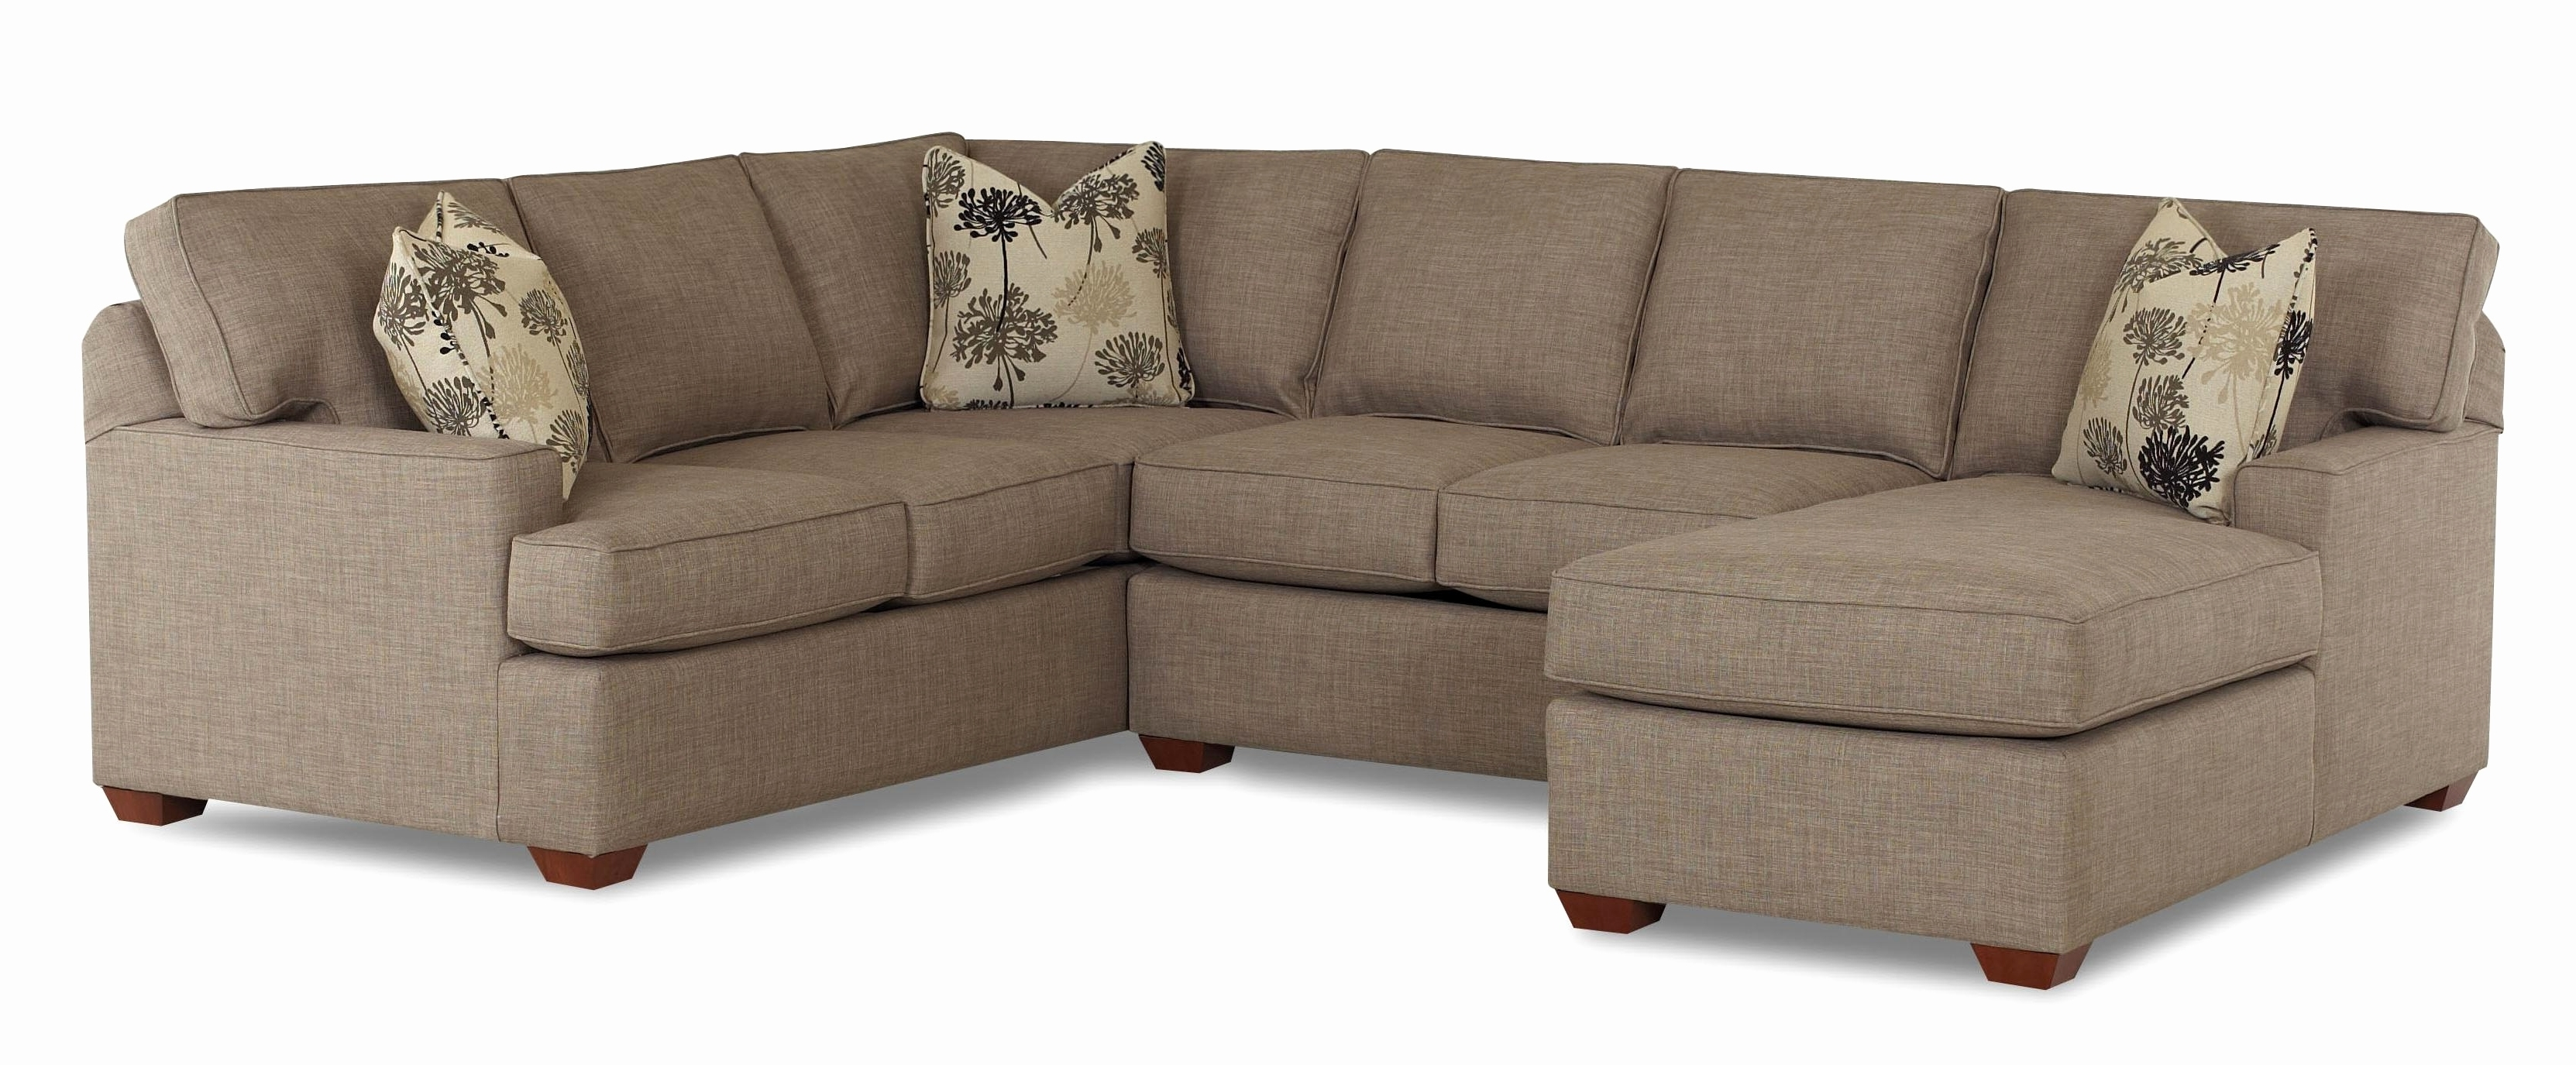 Most Recent 3 Piece Sectional Sofas With Chaise Within Luxury U Shaped Sectional With 2 Chaise 2018 – Couches And Sofas Ideas (View 11 of 15)